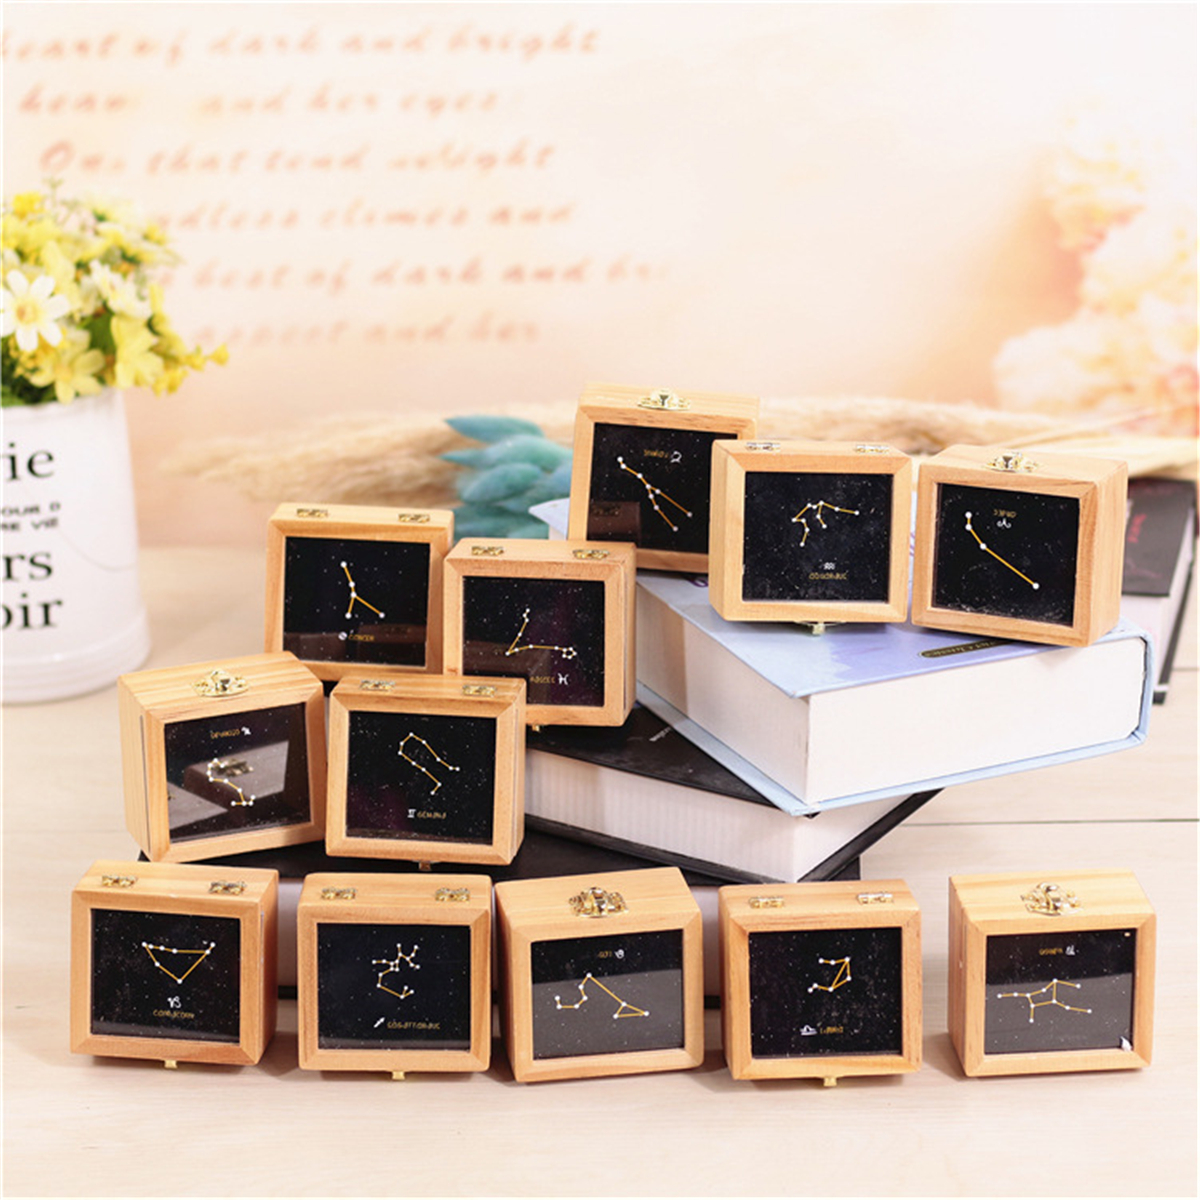 Twelve Constellation Vintage Wooden Music Box Kids Child Xmas Birthday Gift